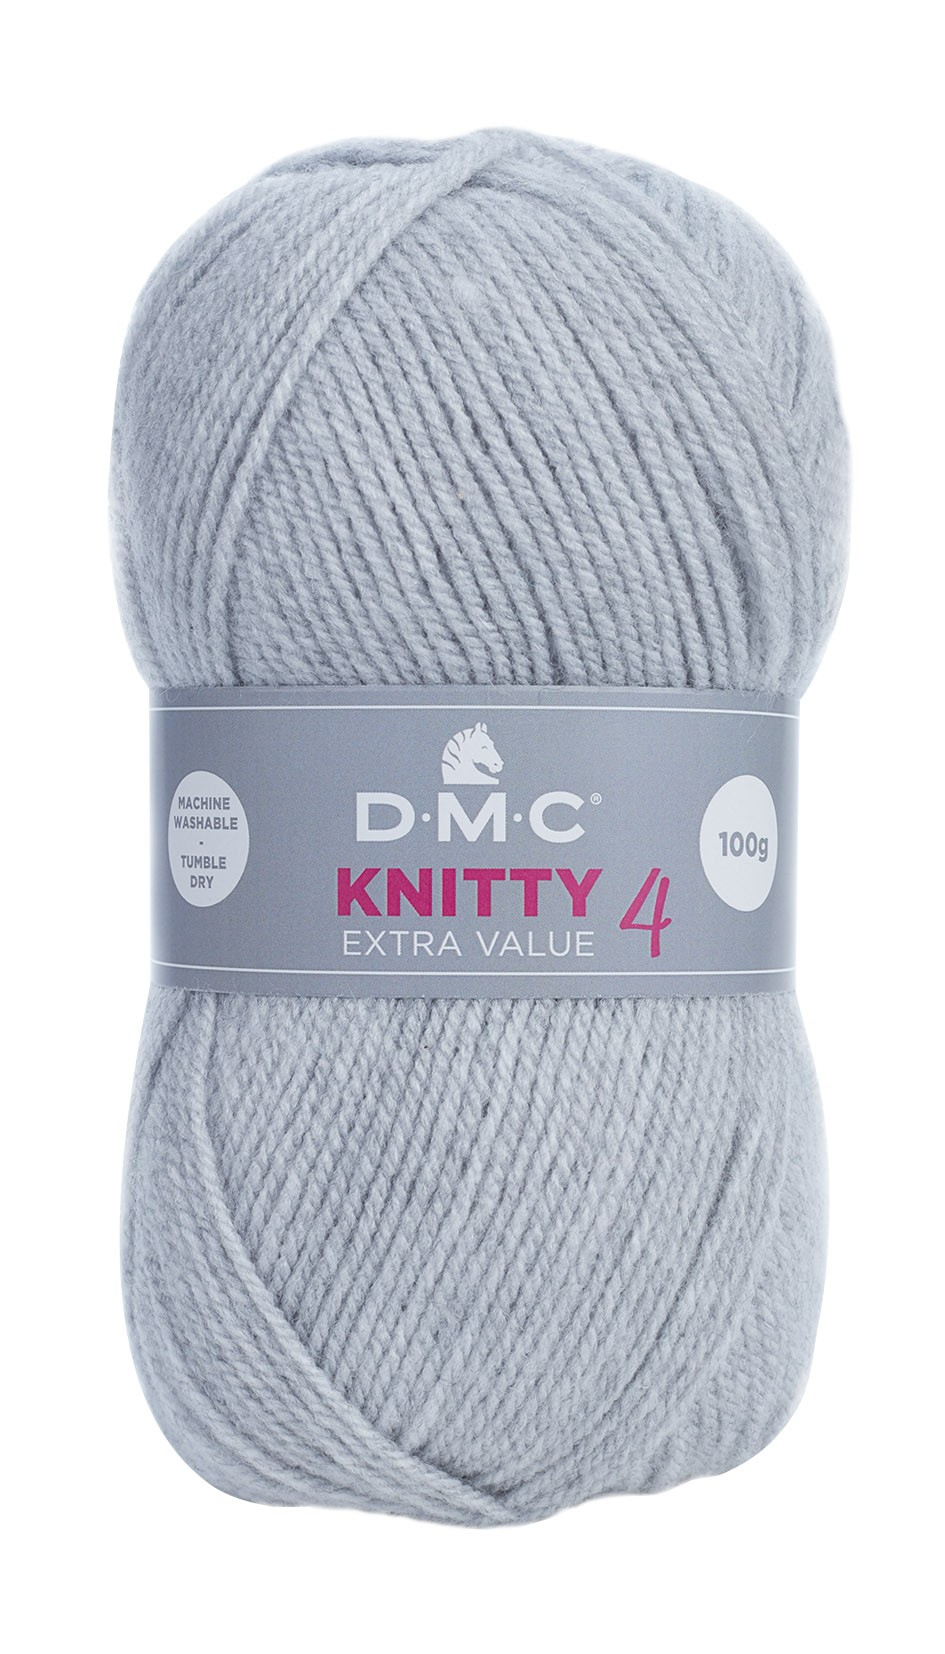 Lana acrílica DMC Knitty 4 Just Knitting 100 g 814